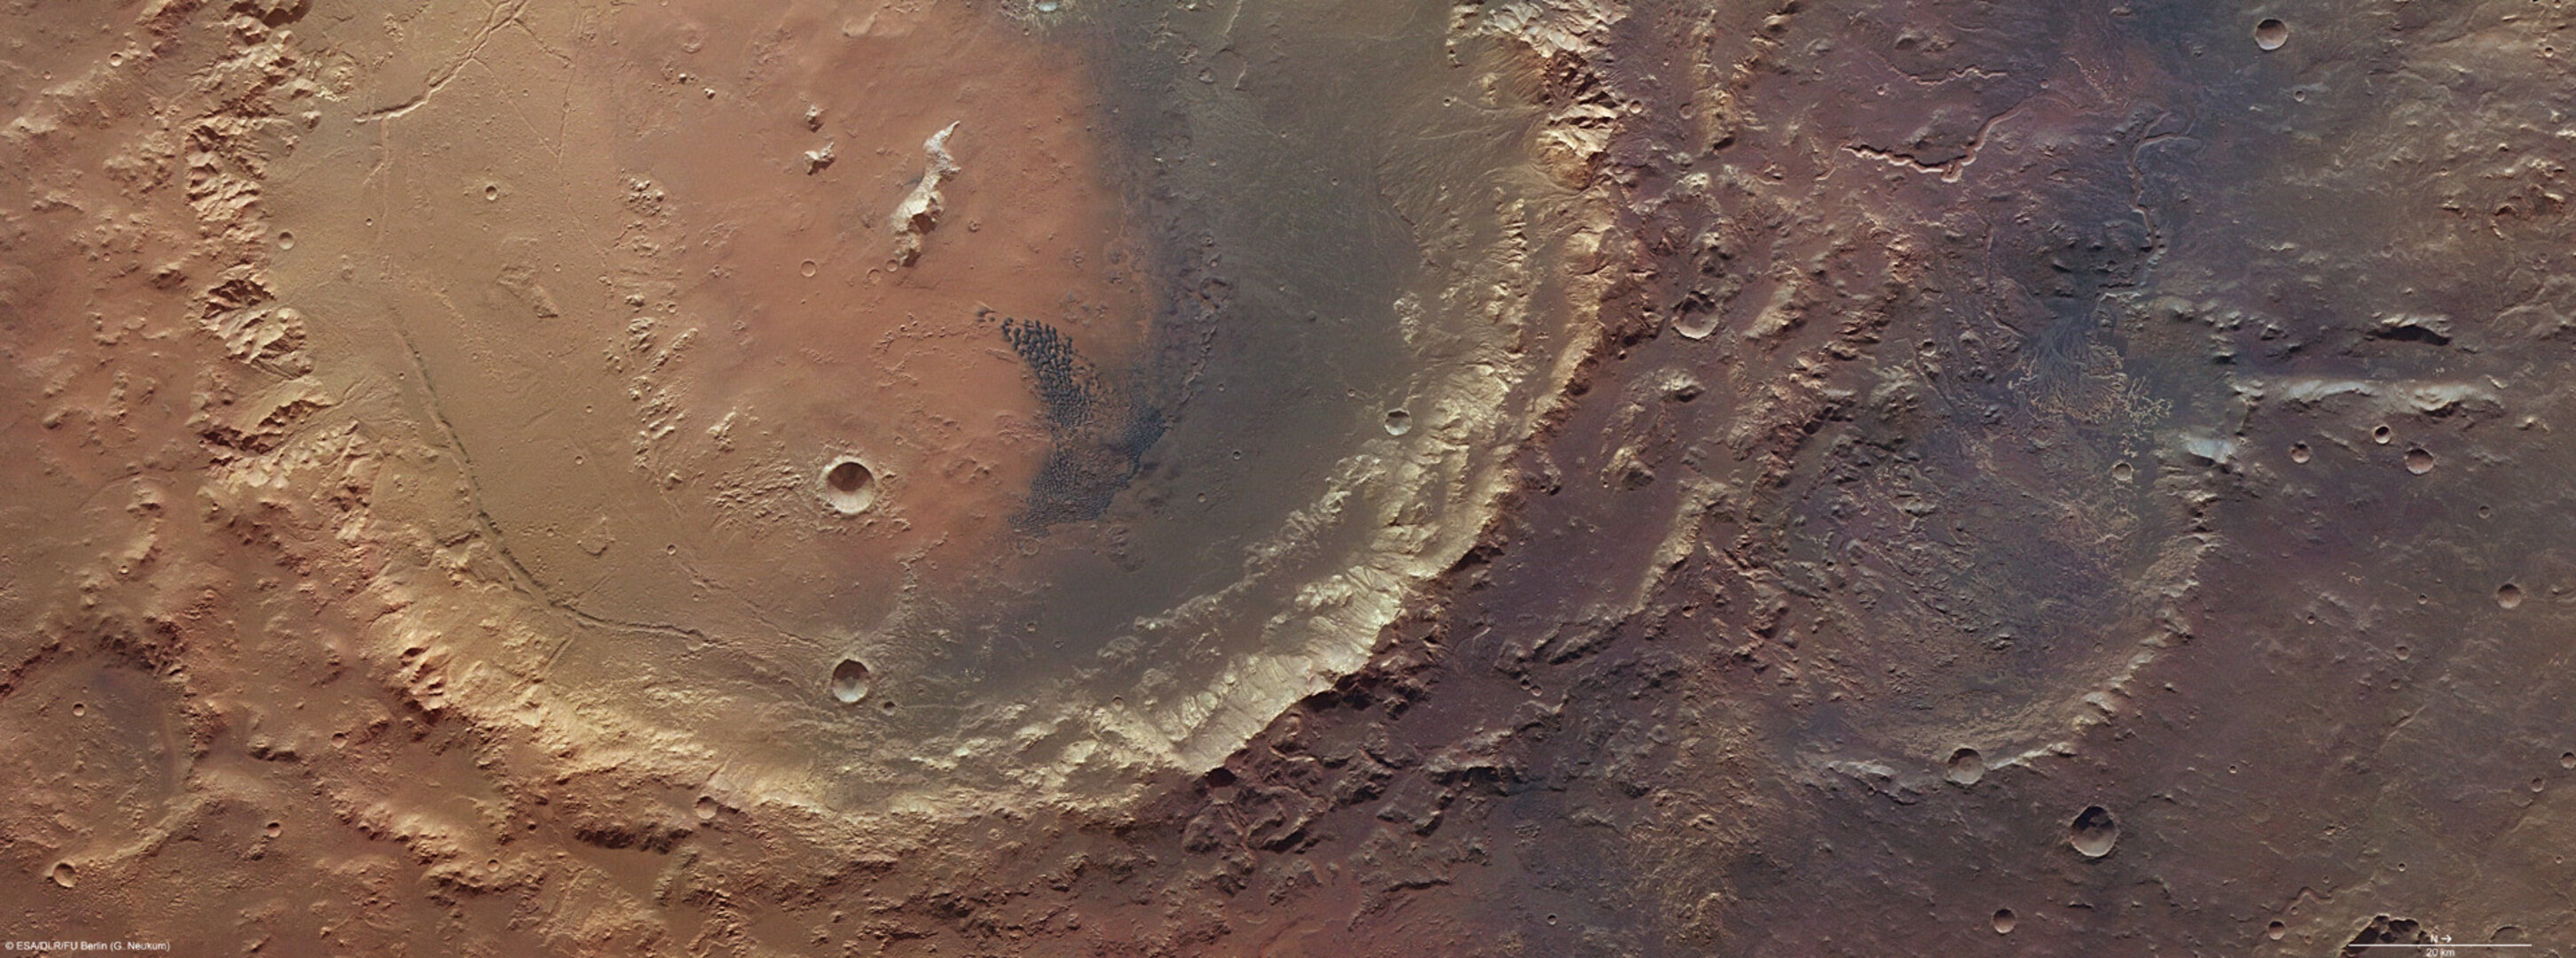 Holden and Eberswalde craters